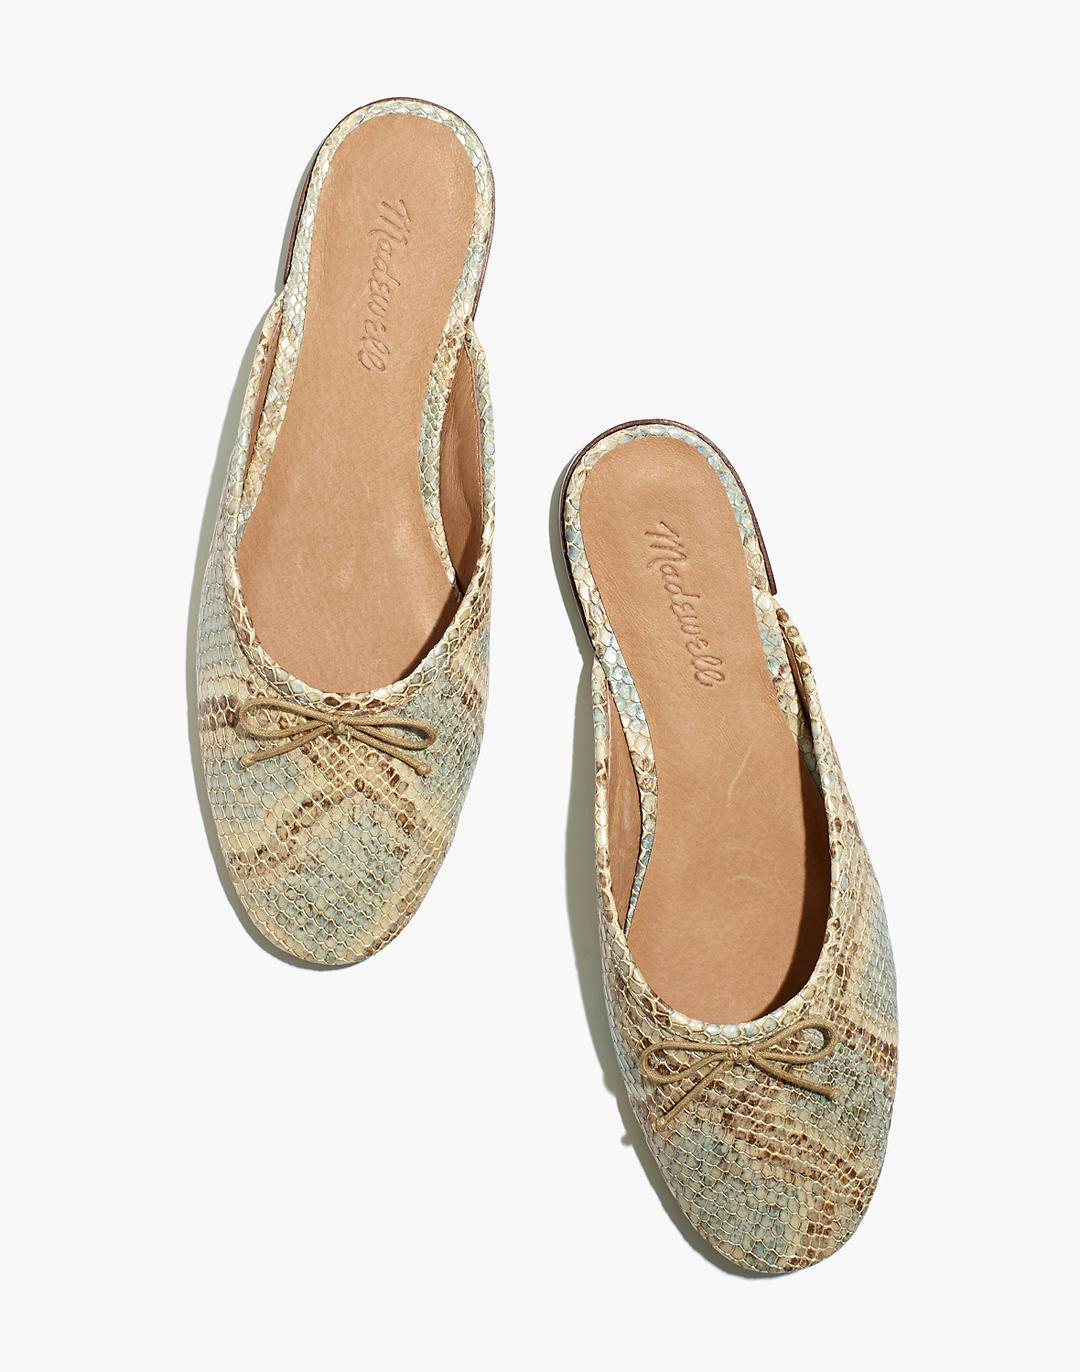 The Adelle Ballet Mule in Snake Embossed Leather